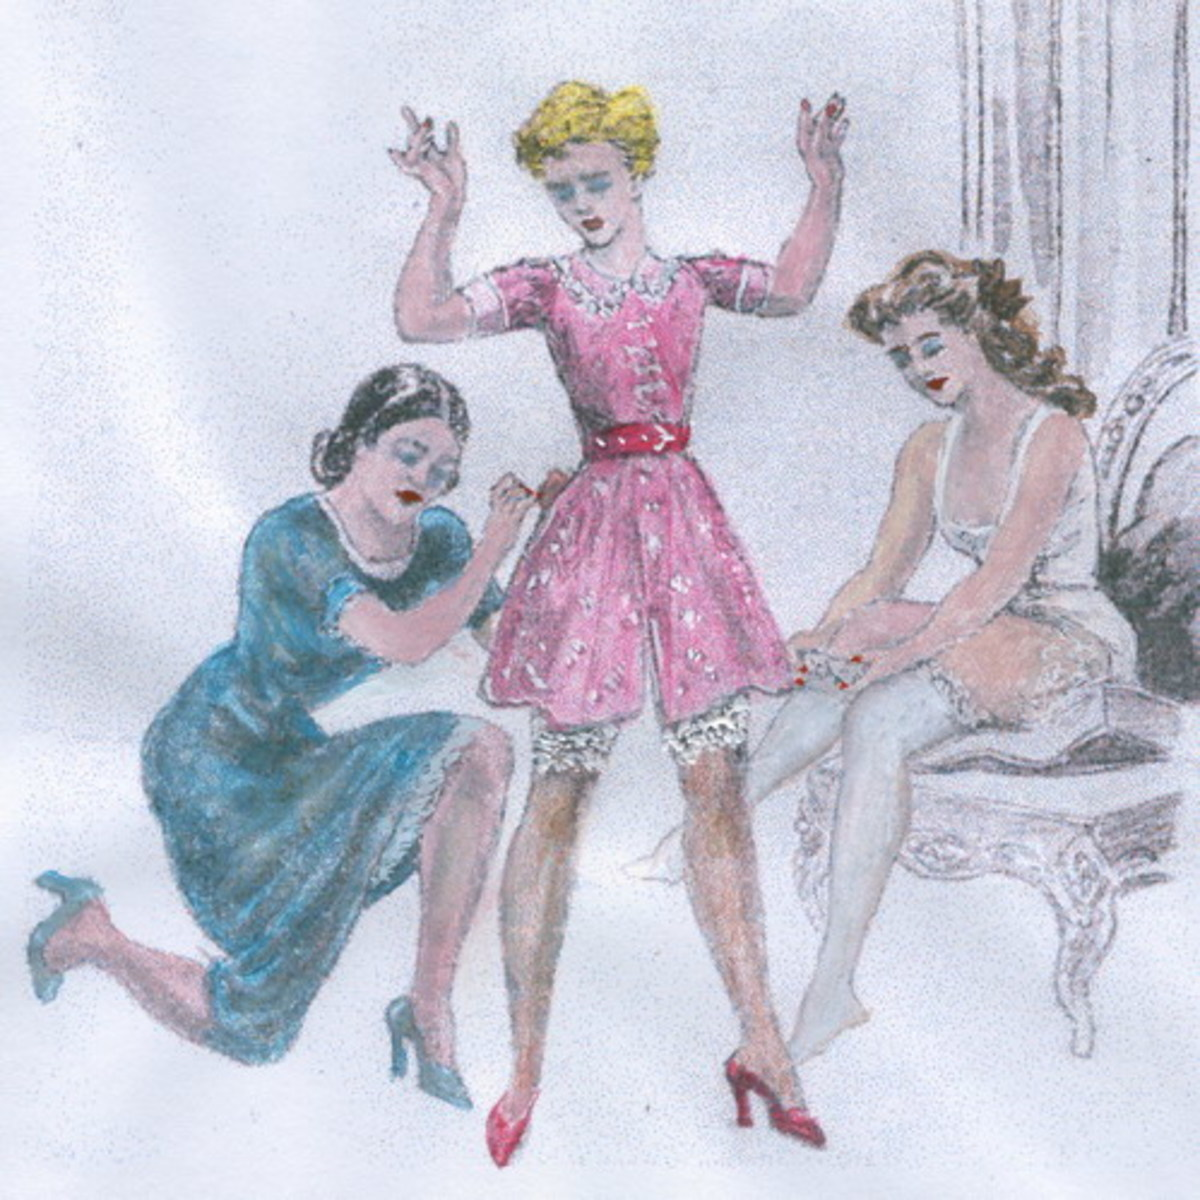 Confessions of a Cross-Dresser!